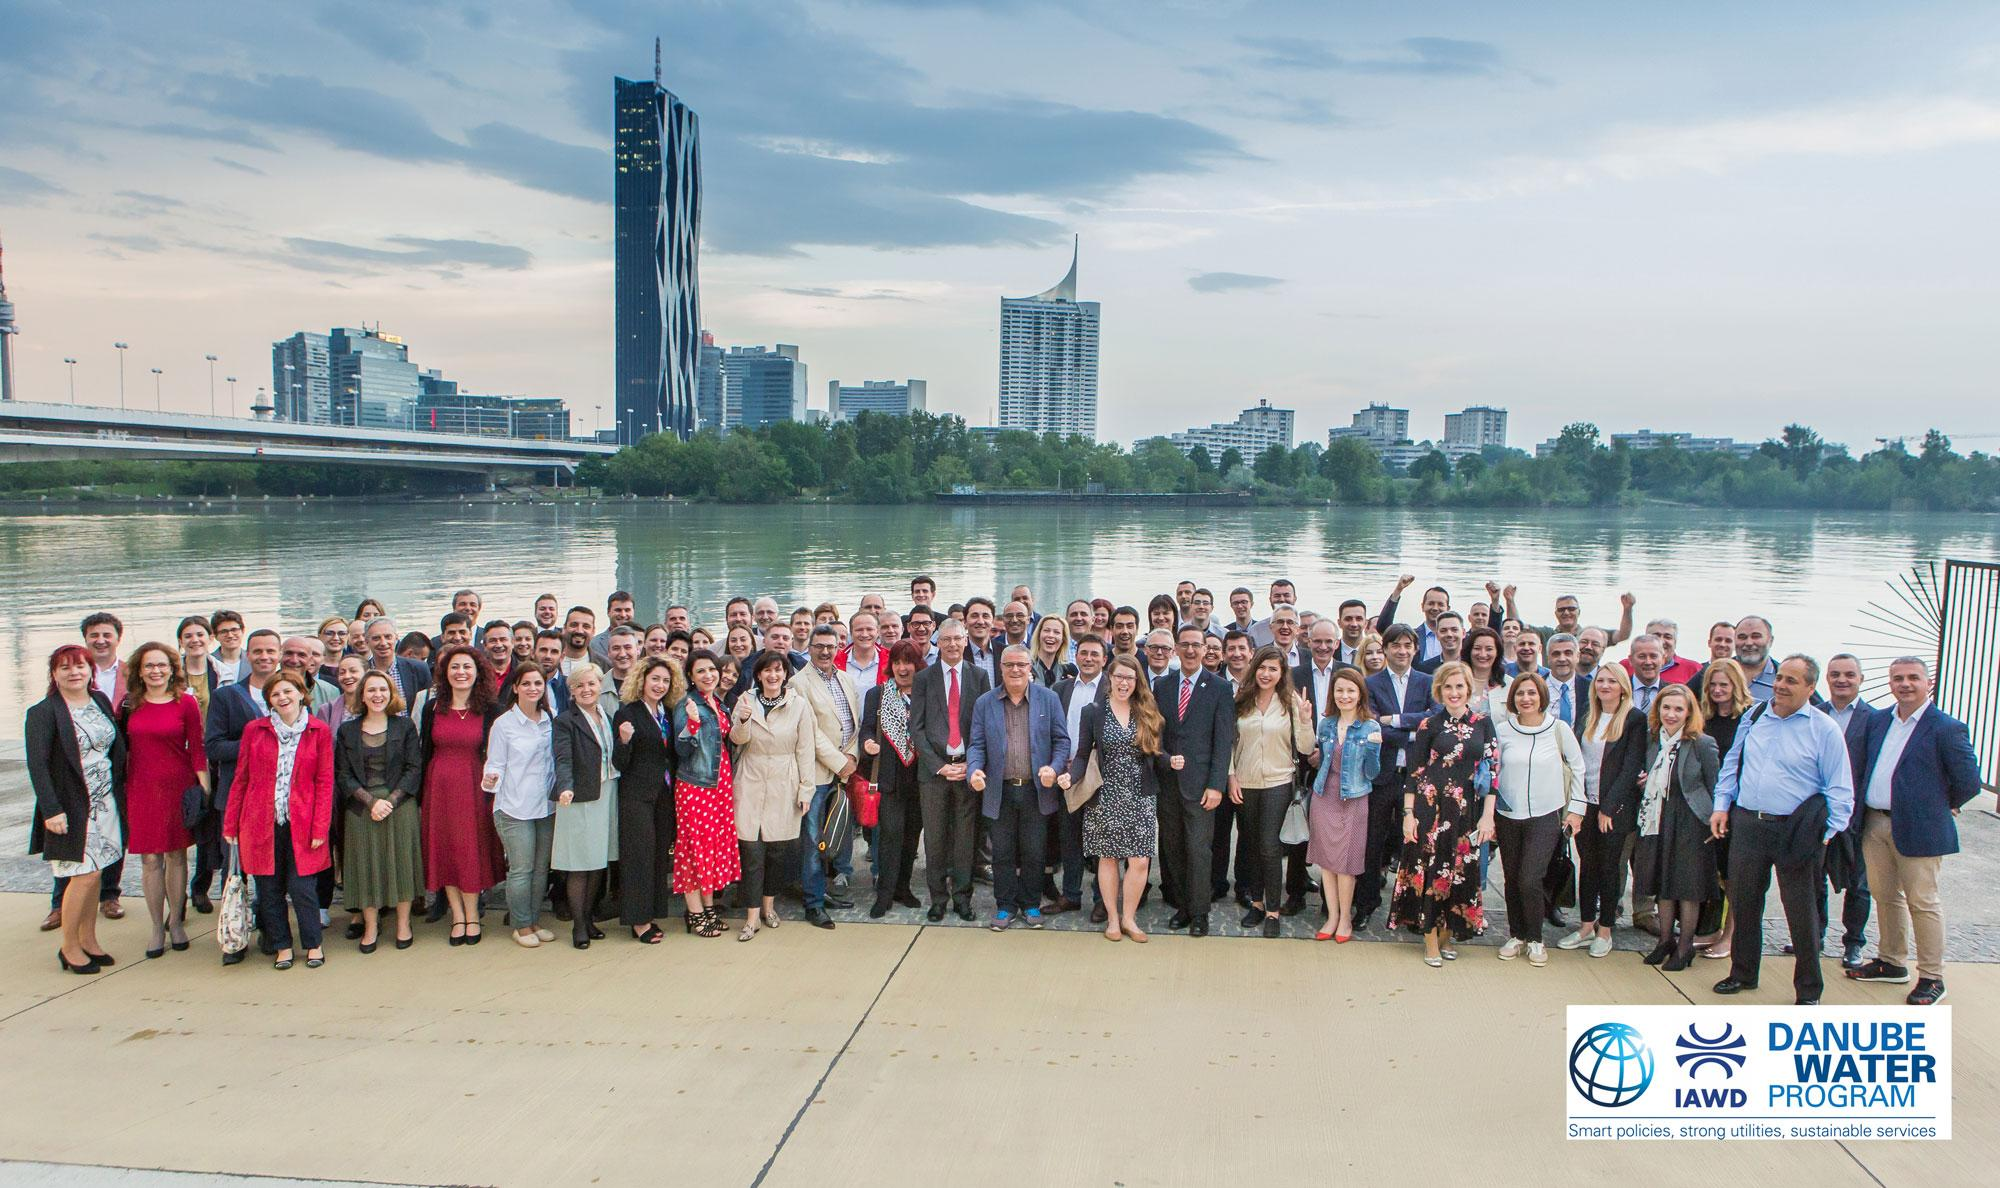 Danube Water Conference